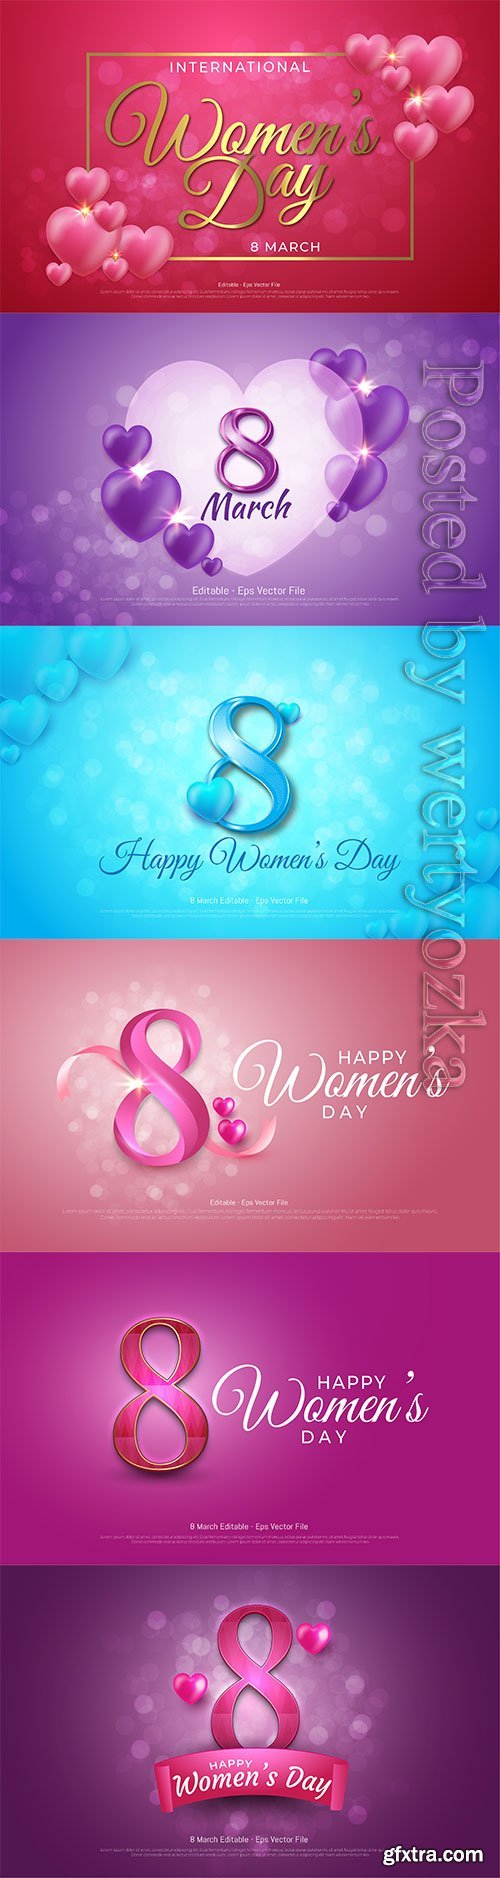 Vector editable text effect, women's day 8 march with flowers